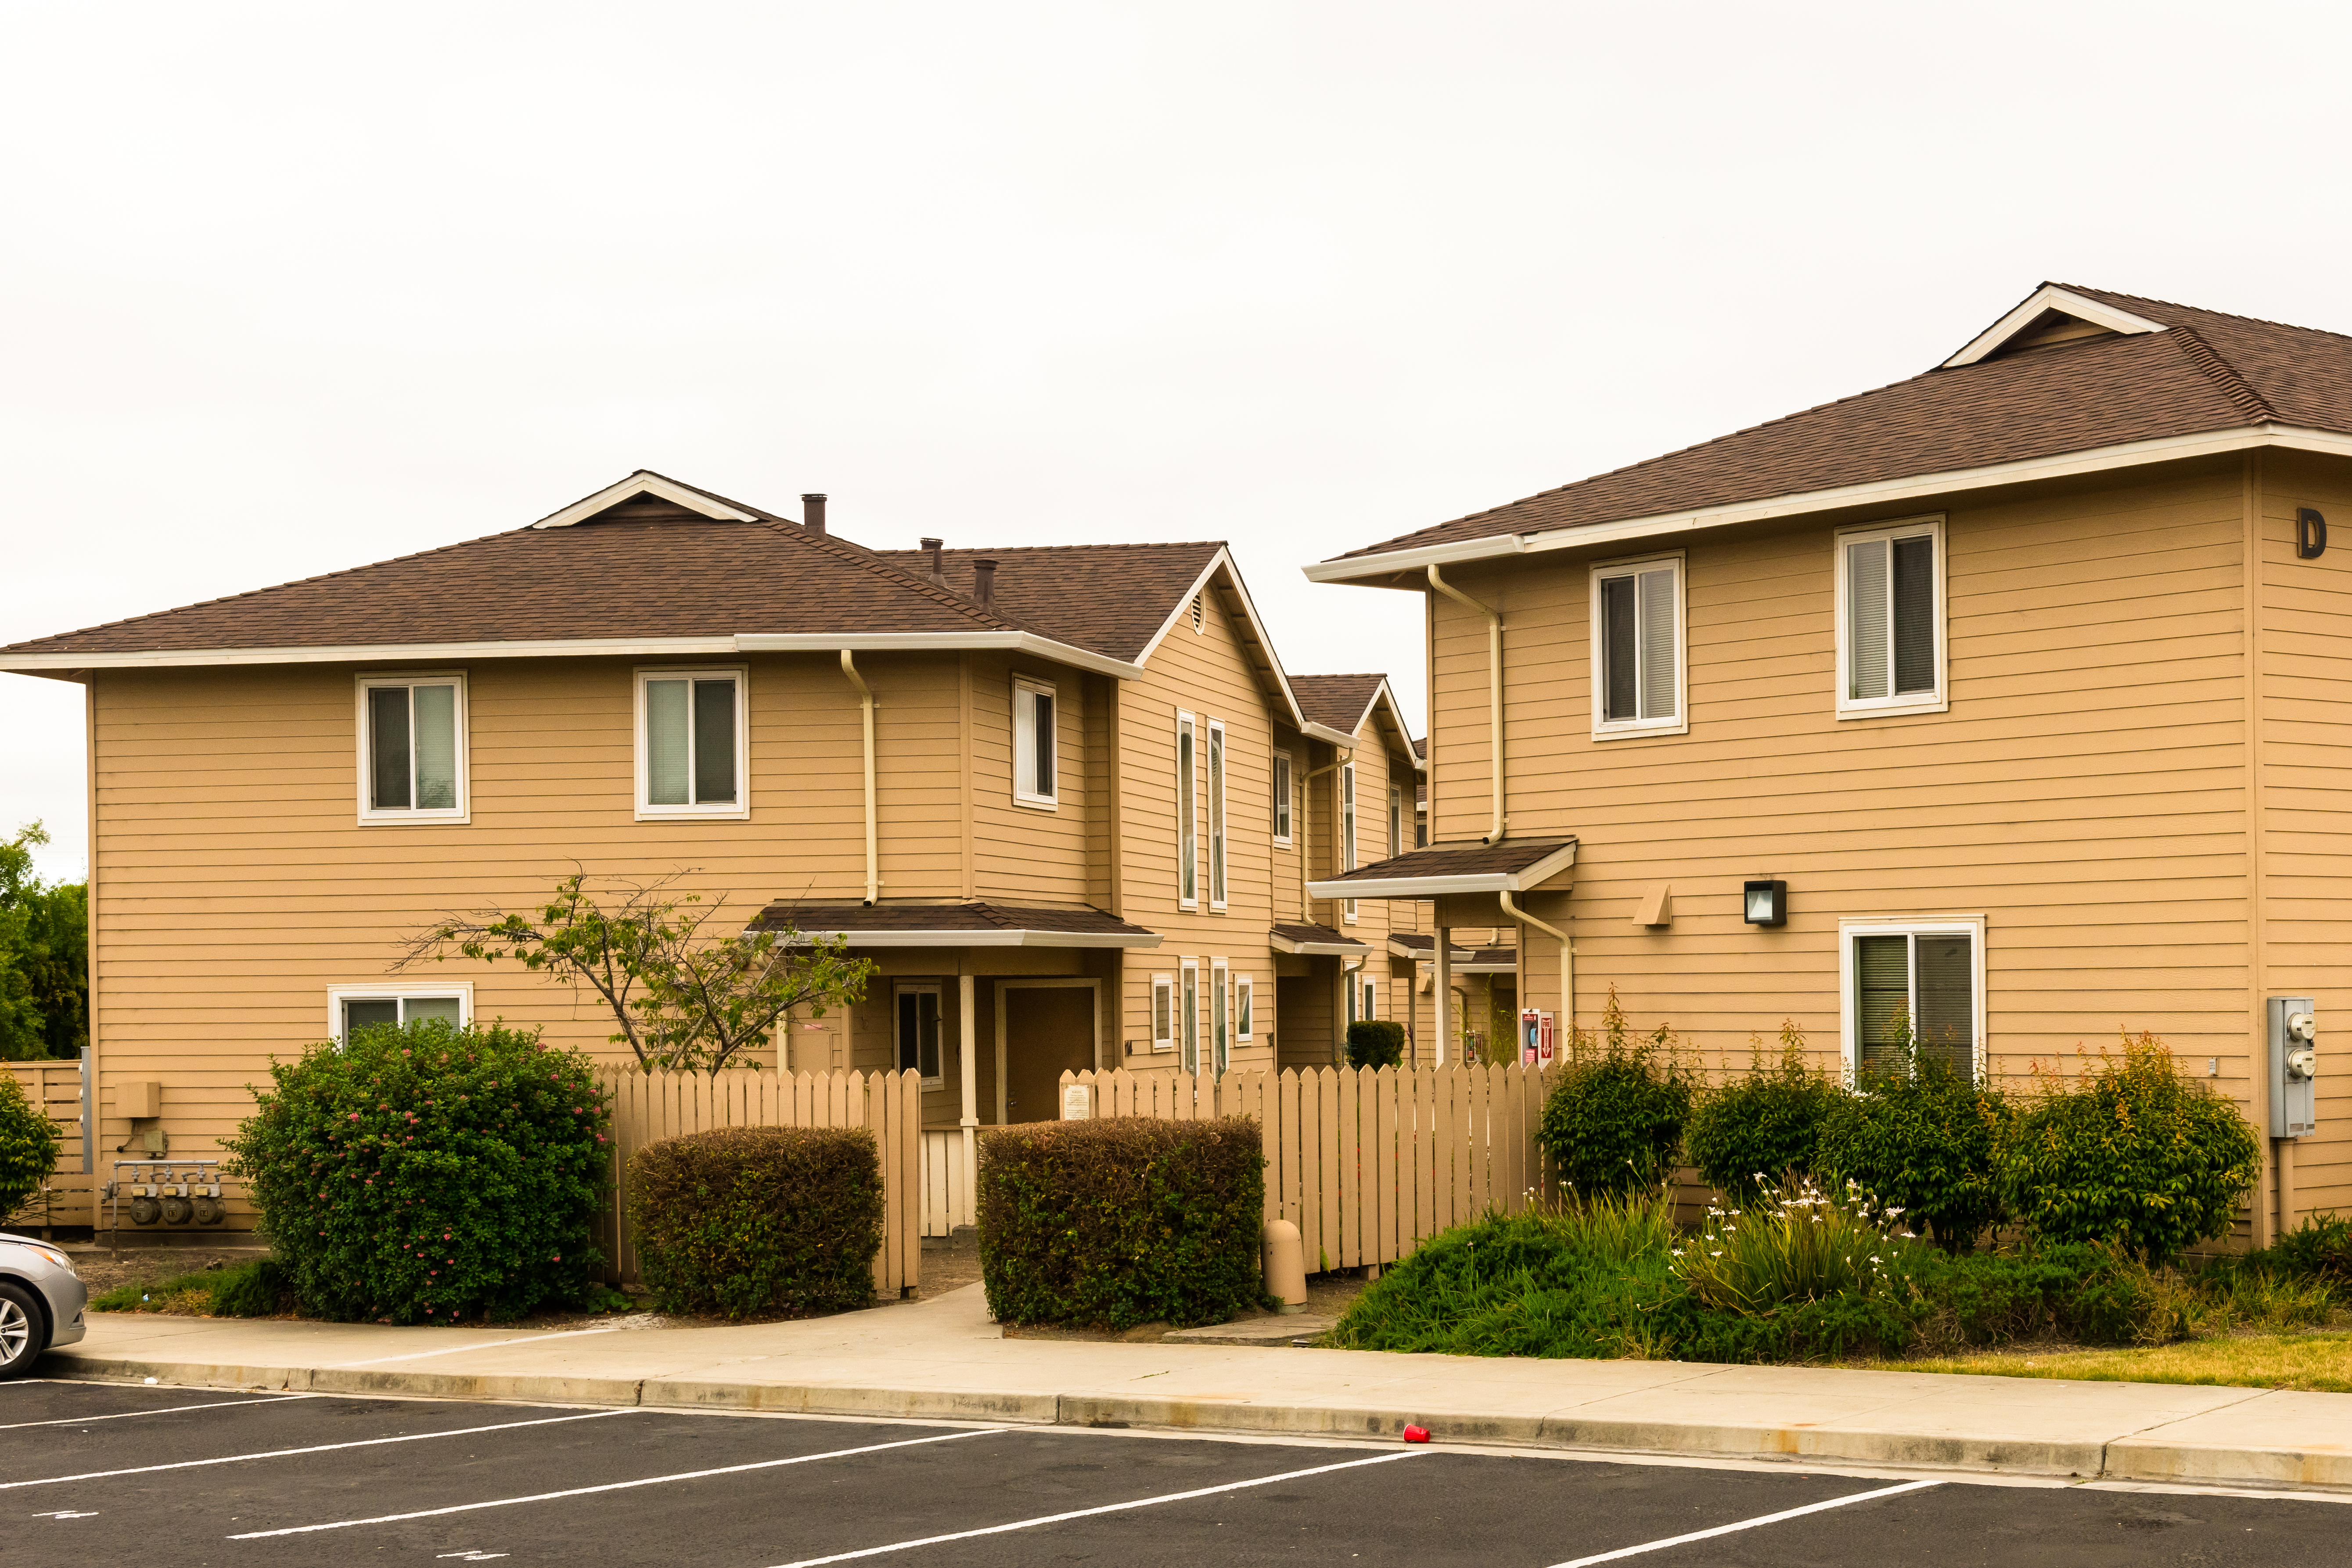 Housing Authority of the County of Monterey, CA | Section 8